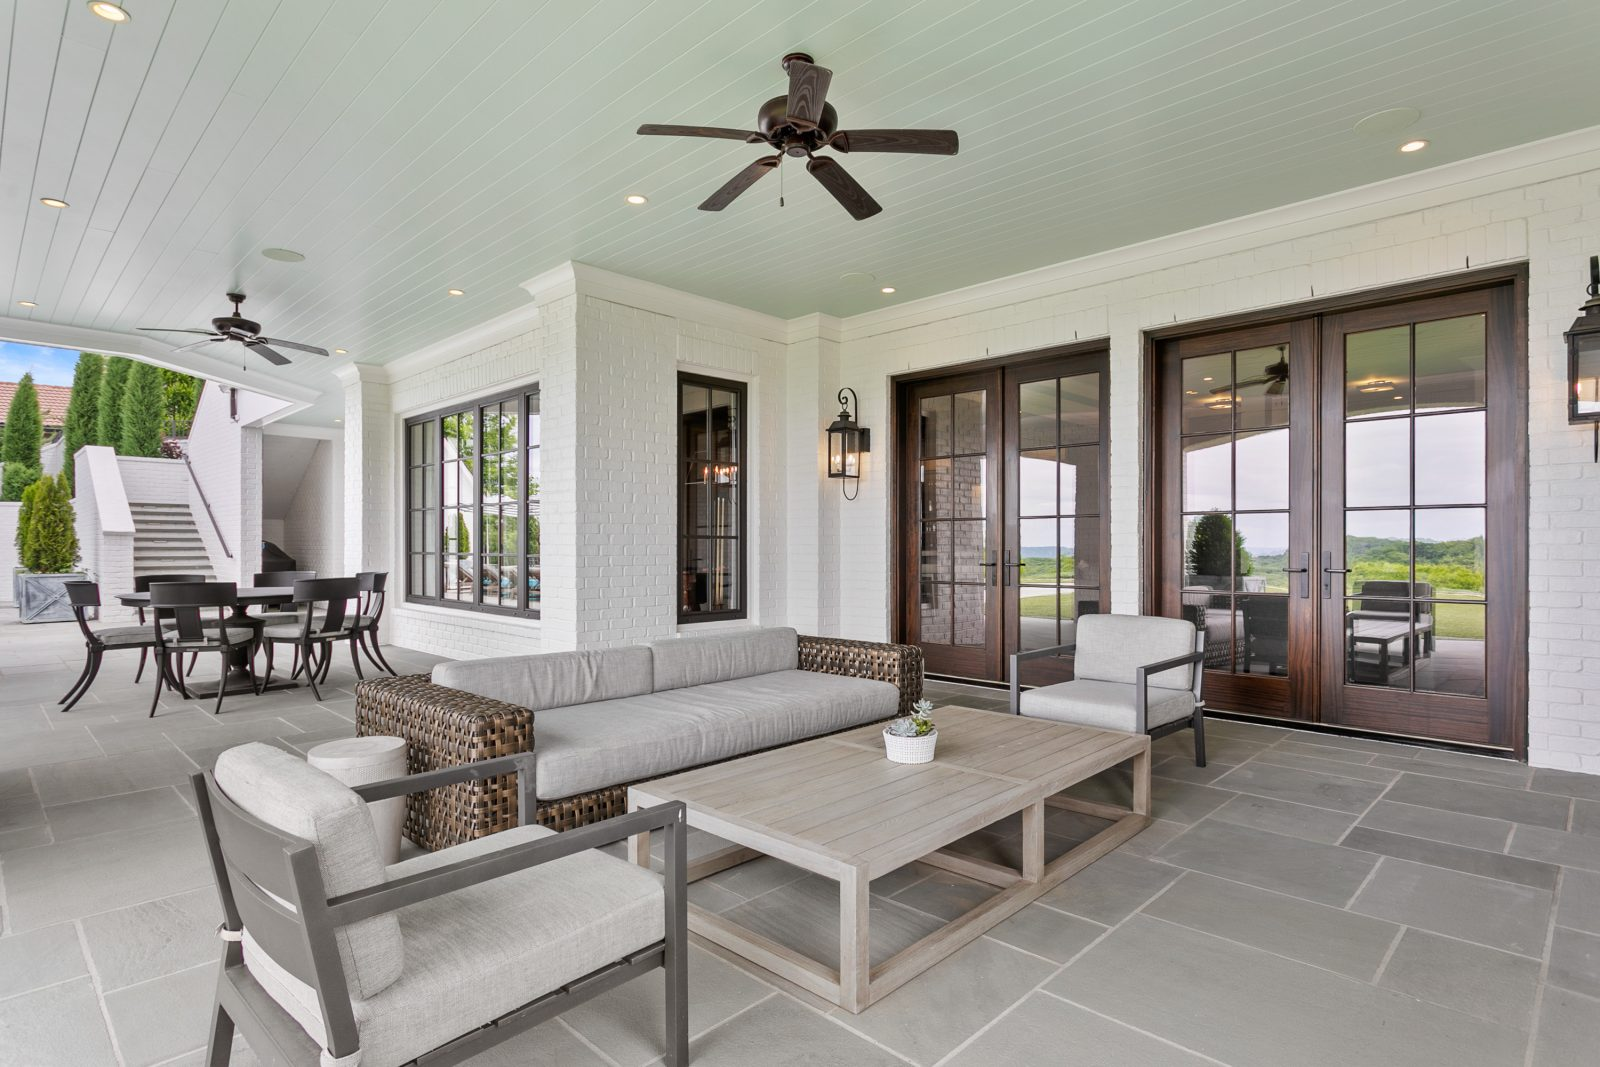 Sunroom at the Pagliara residence as another part of our Backyard Oasis series.